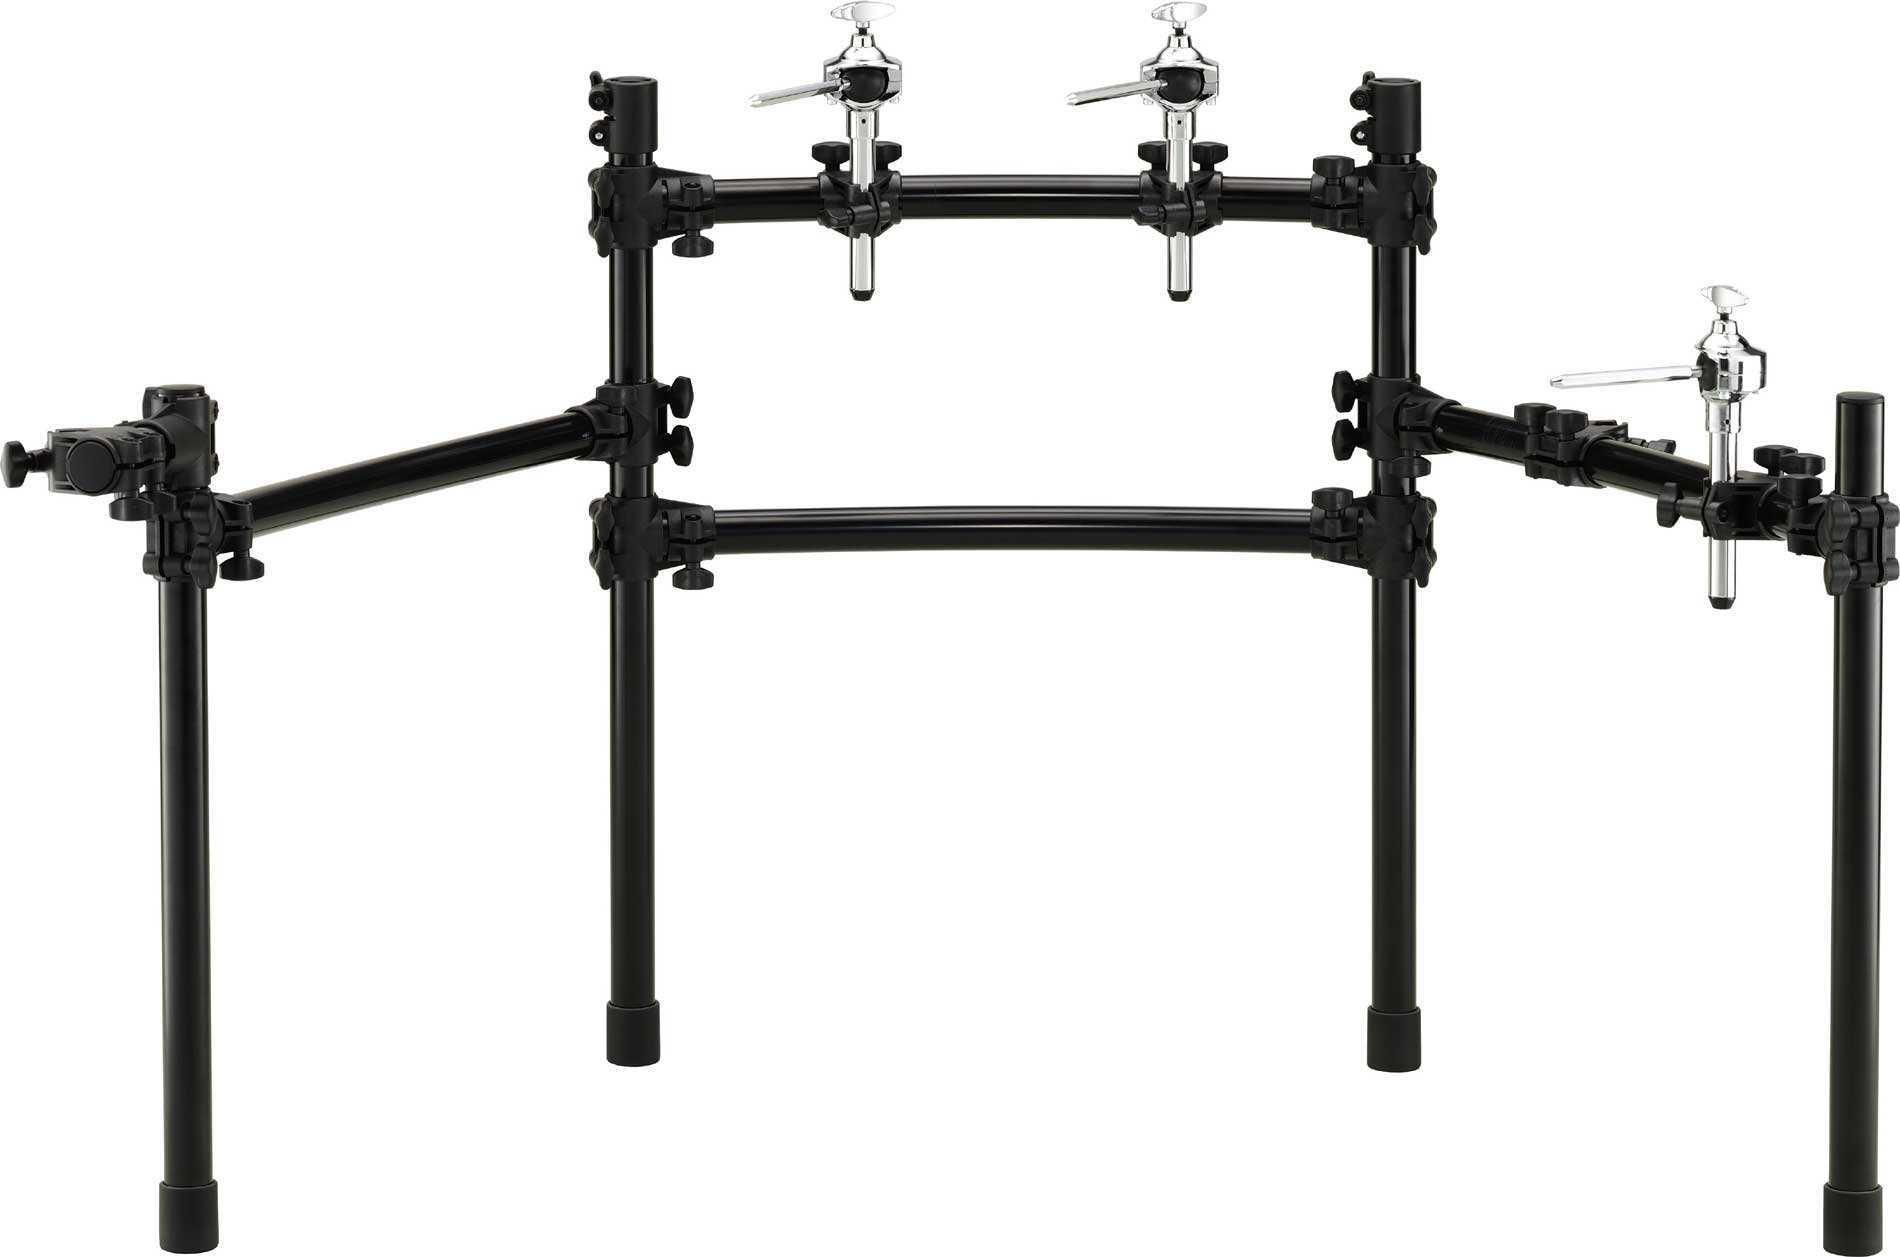 Assembled Curved Rack System for Yamaha DTX Drums